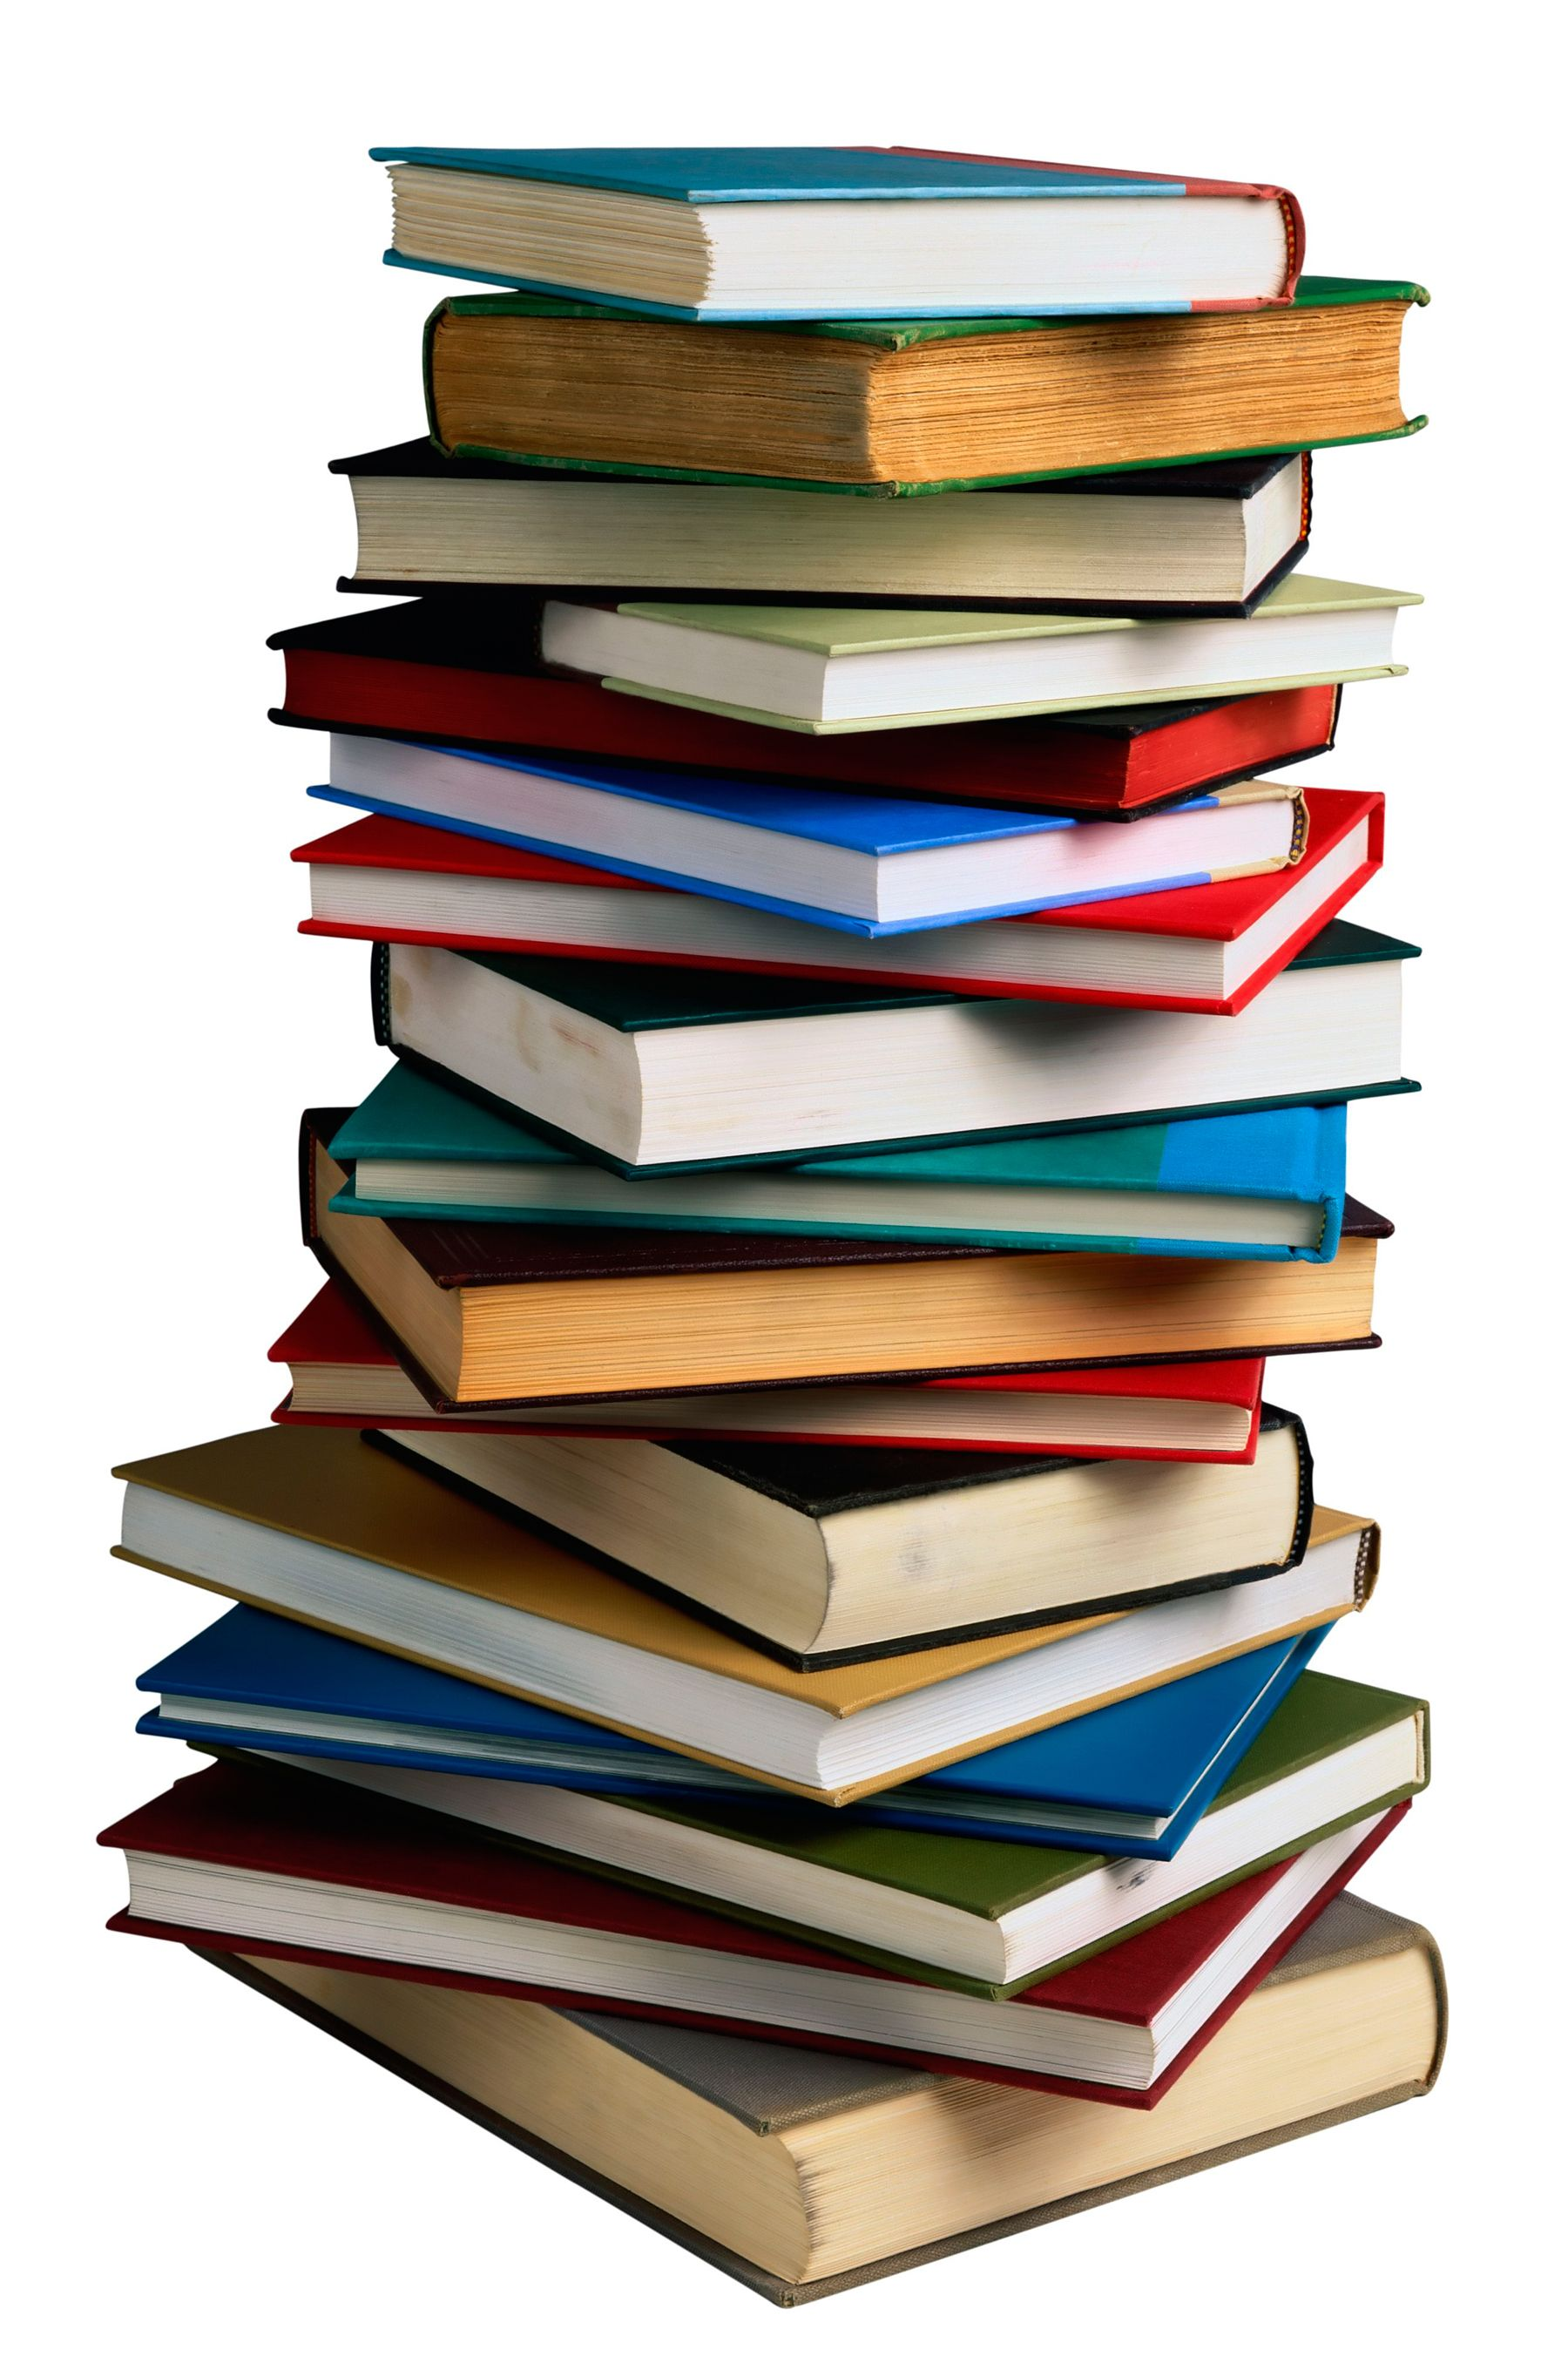 Book Stack for Studies 685.68 Kb